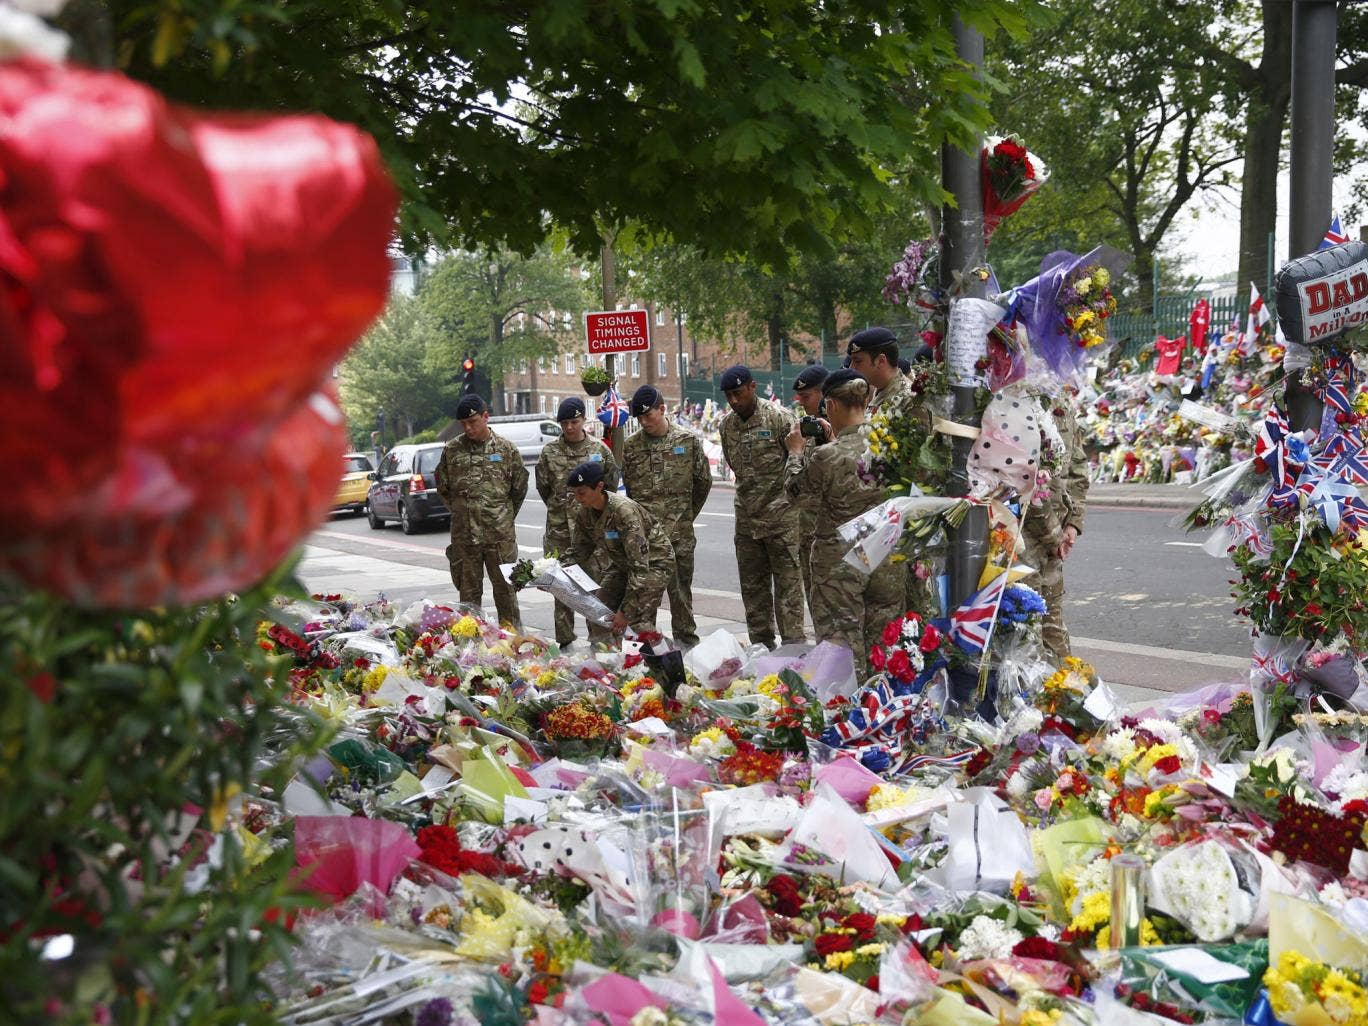 31 May 2013: Soldiers lay flowers at the scene of the killing of British soldier Lee Rigby in Woolwich, southeast London. The inquest into Rigby's death was opened and adjourned.